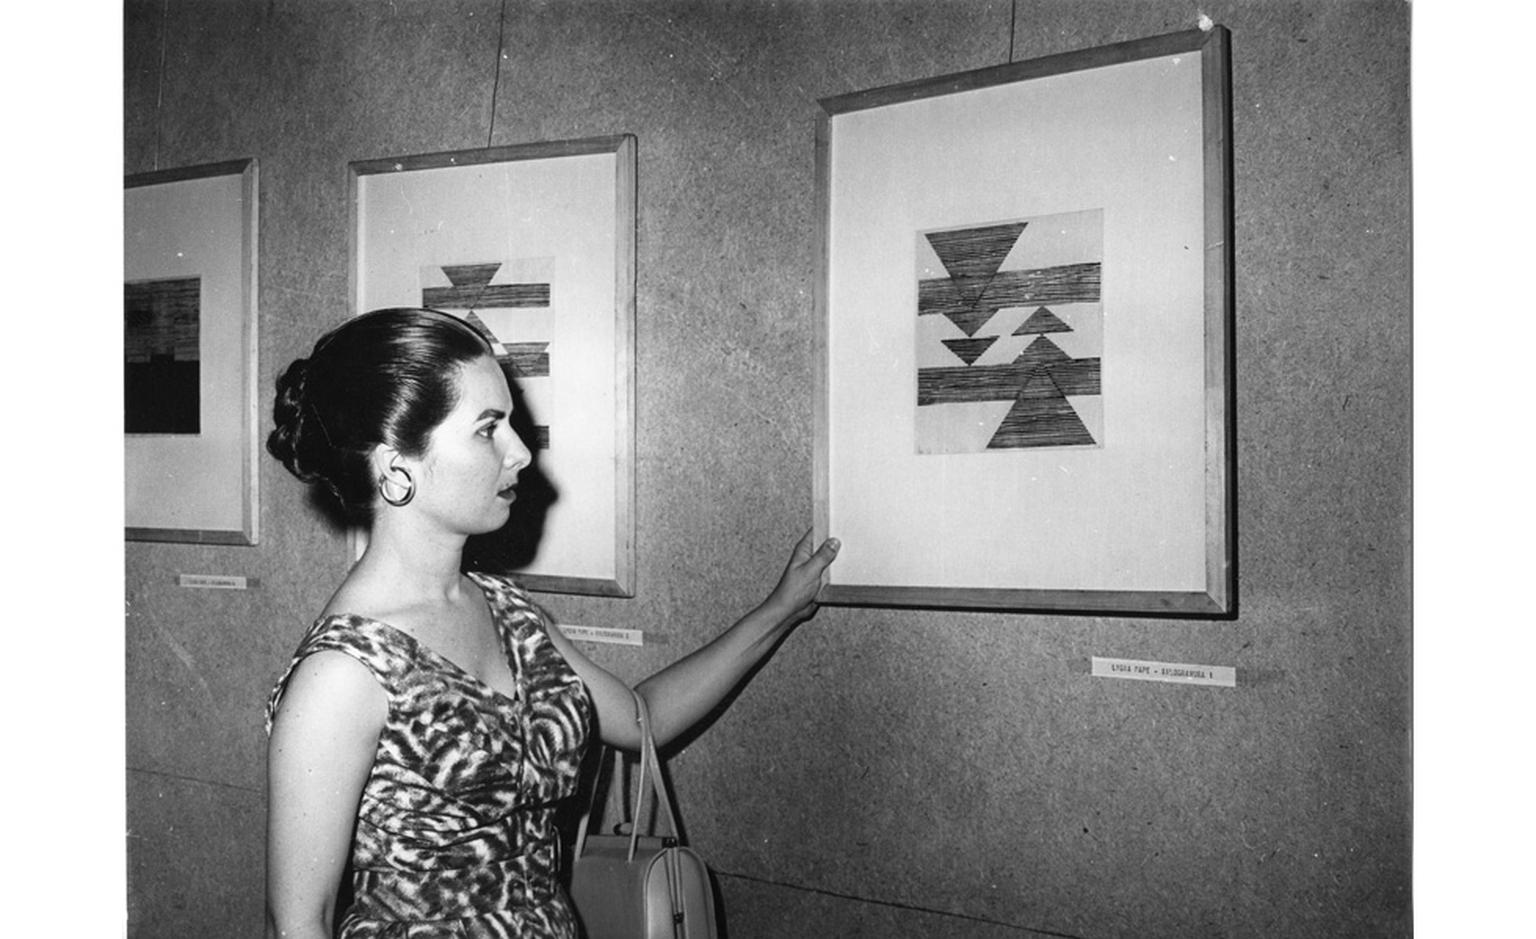 Lygia Pape at the National Exhibition of Concrete Art, 1956. Published in Cruzeiro magazine. Vintage photography. Projeto Lygia Pape © Projeto Lygia Pape and Museo Nacional Centro de Arte Reina Sofía